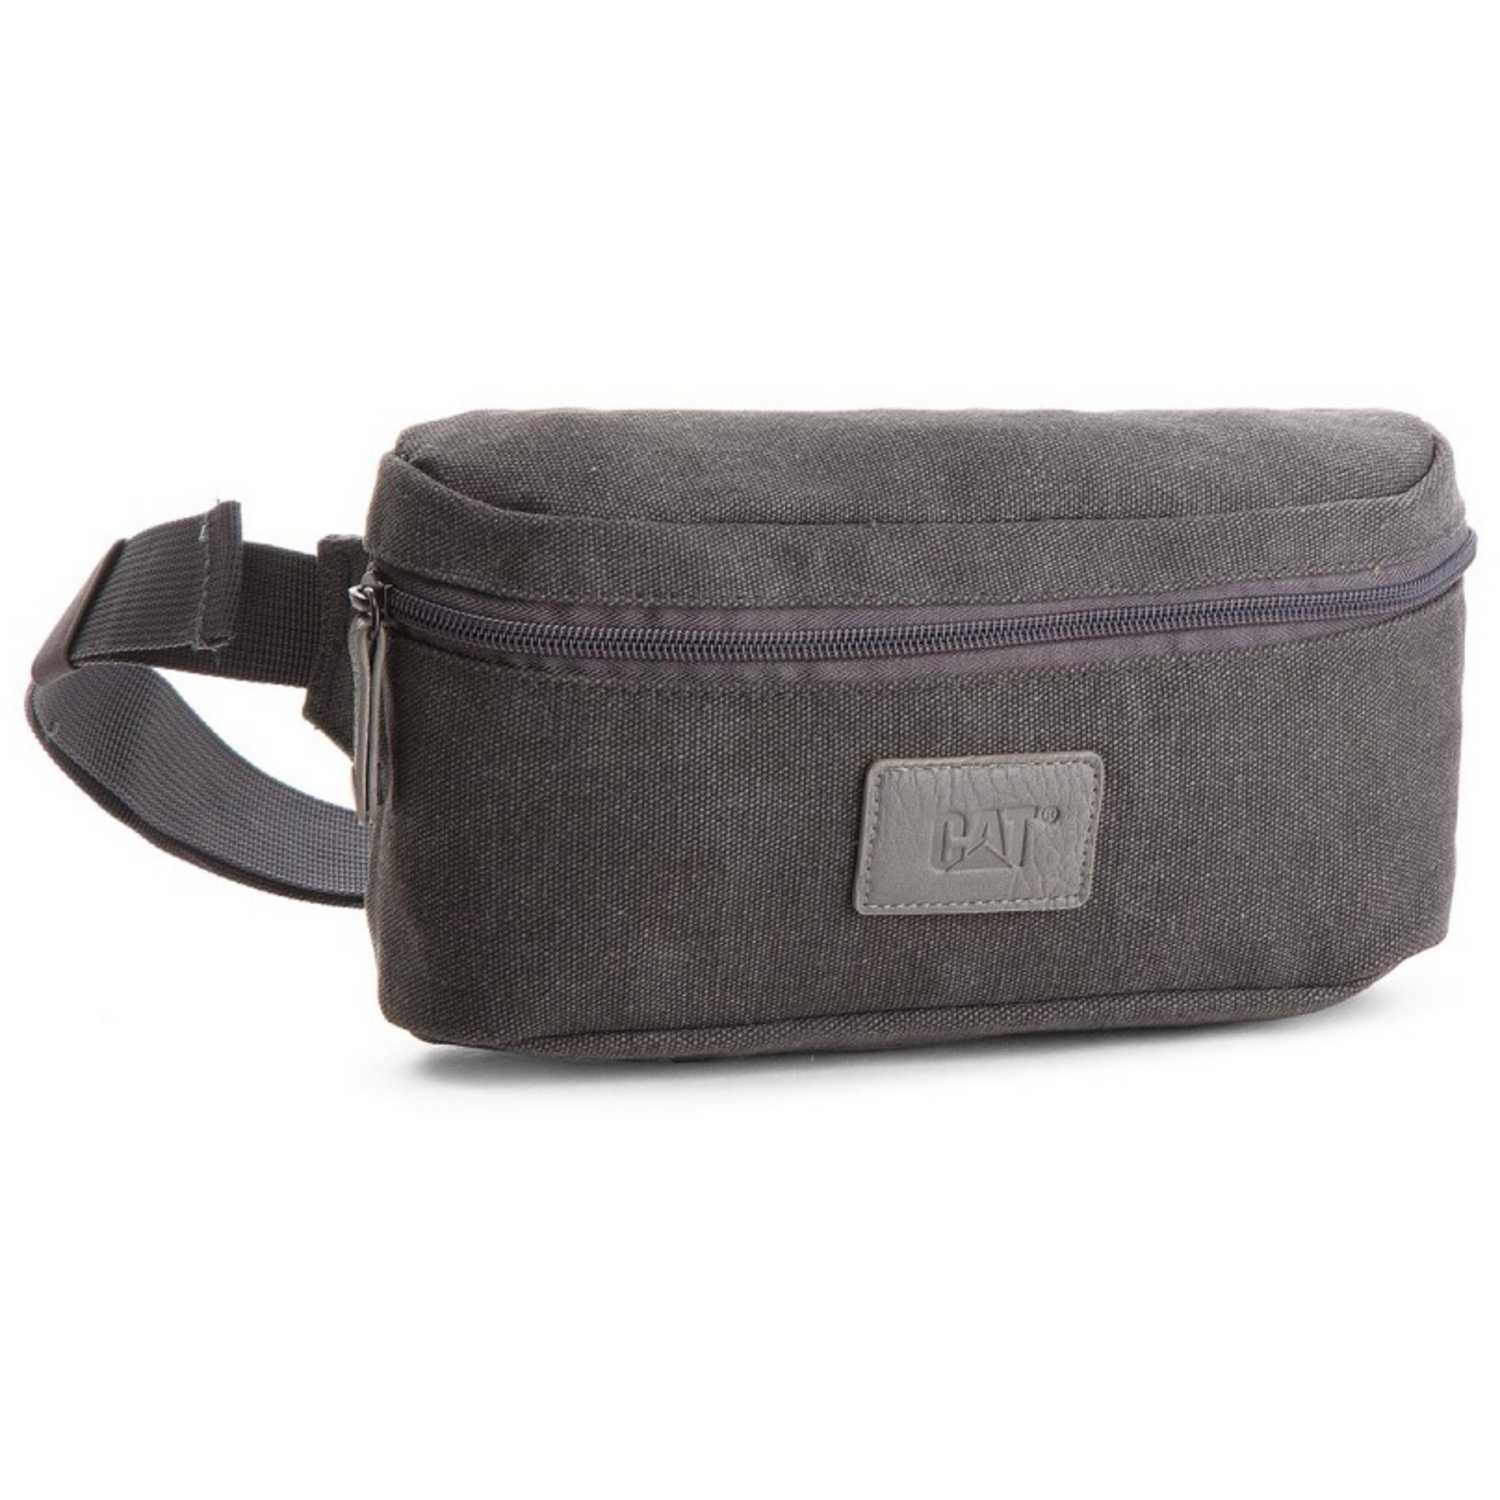 Canguro de Hombre CAT Marron waist bag